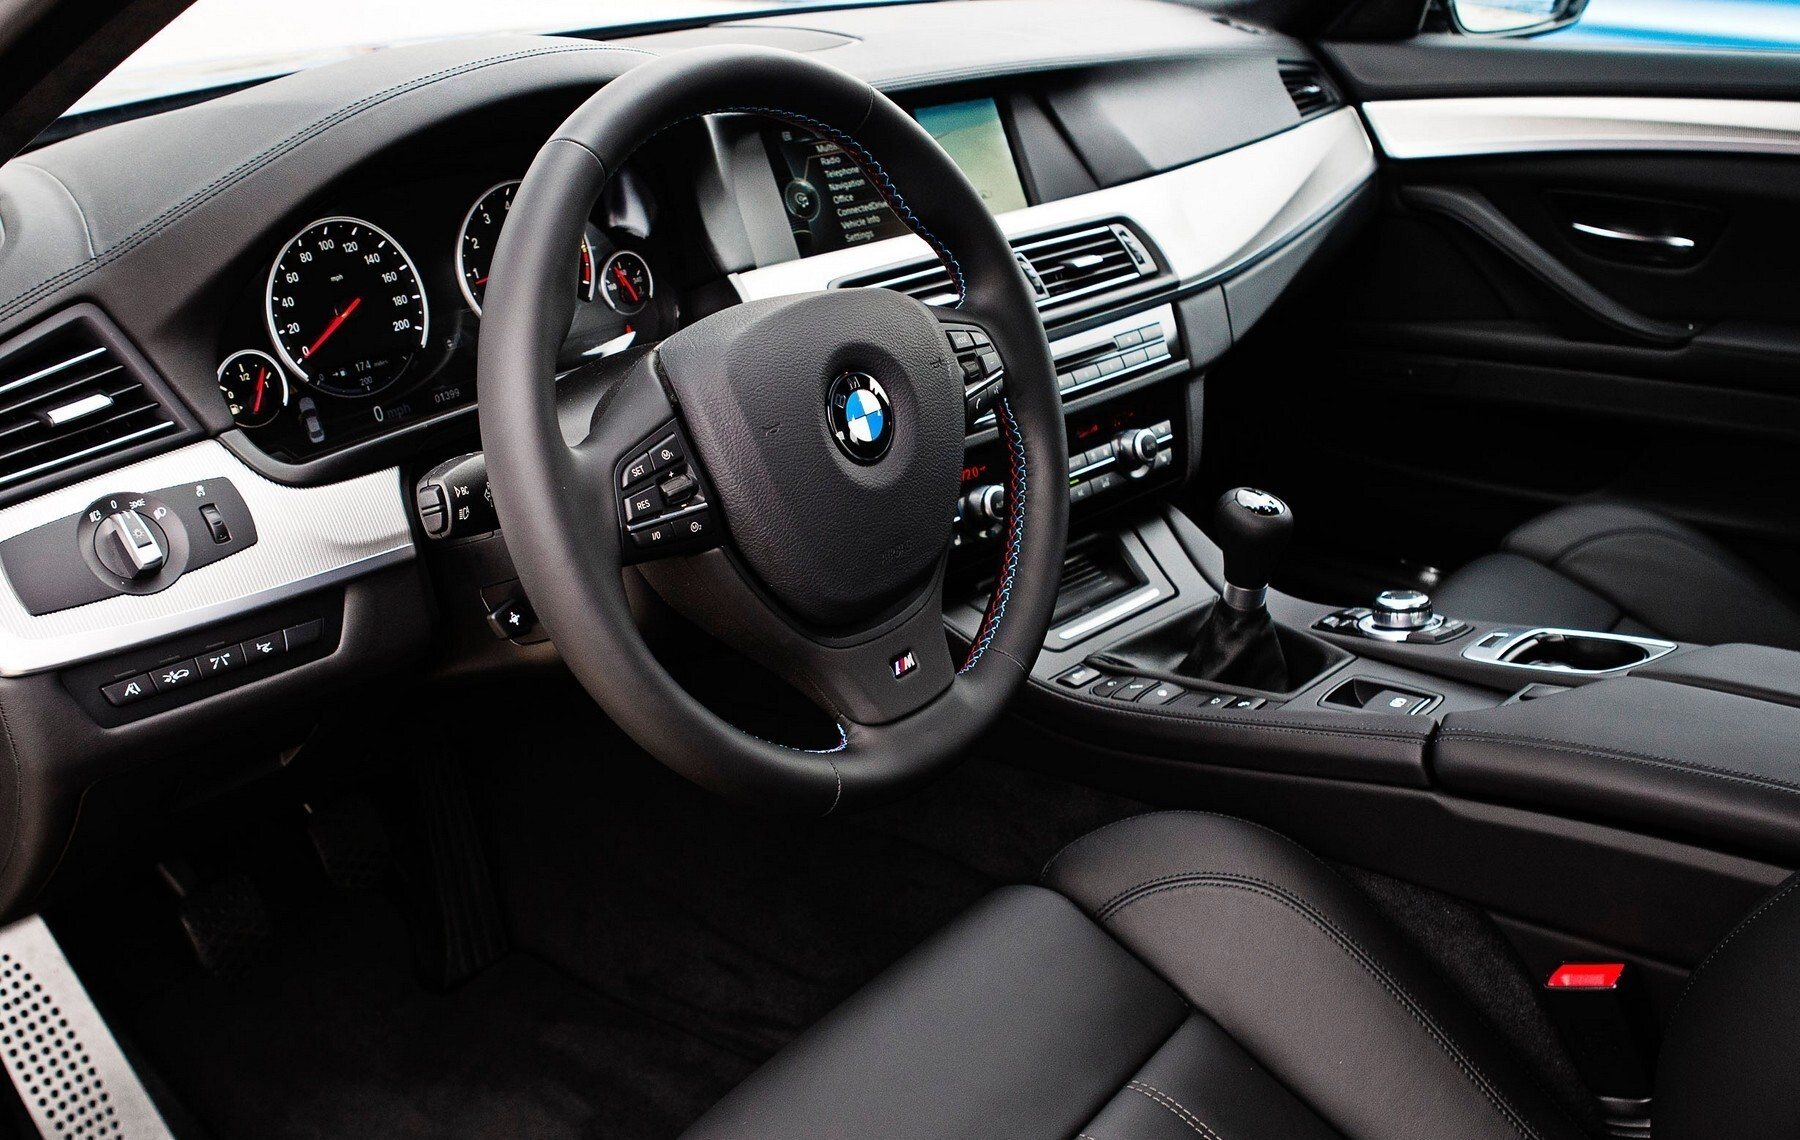 bmw m5 car interior wallpapers hd wallpapers. Black Bedroom Furniture Sets. Home Design Ideas